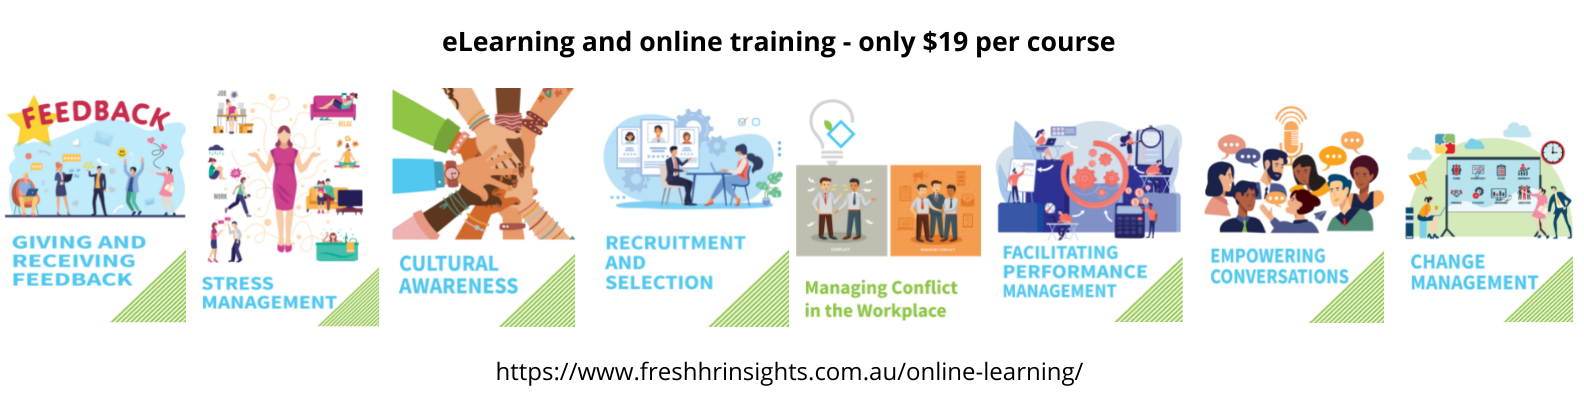 eLearning and online training only 19 per course - 2021 - Fair Work Commission has announced a 2.5 percent increase in the minimum wage